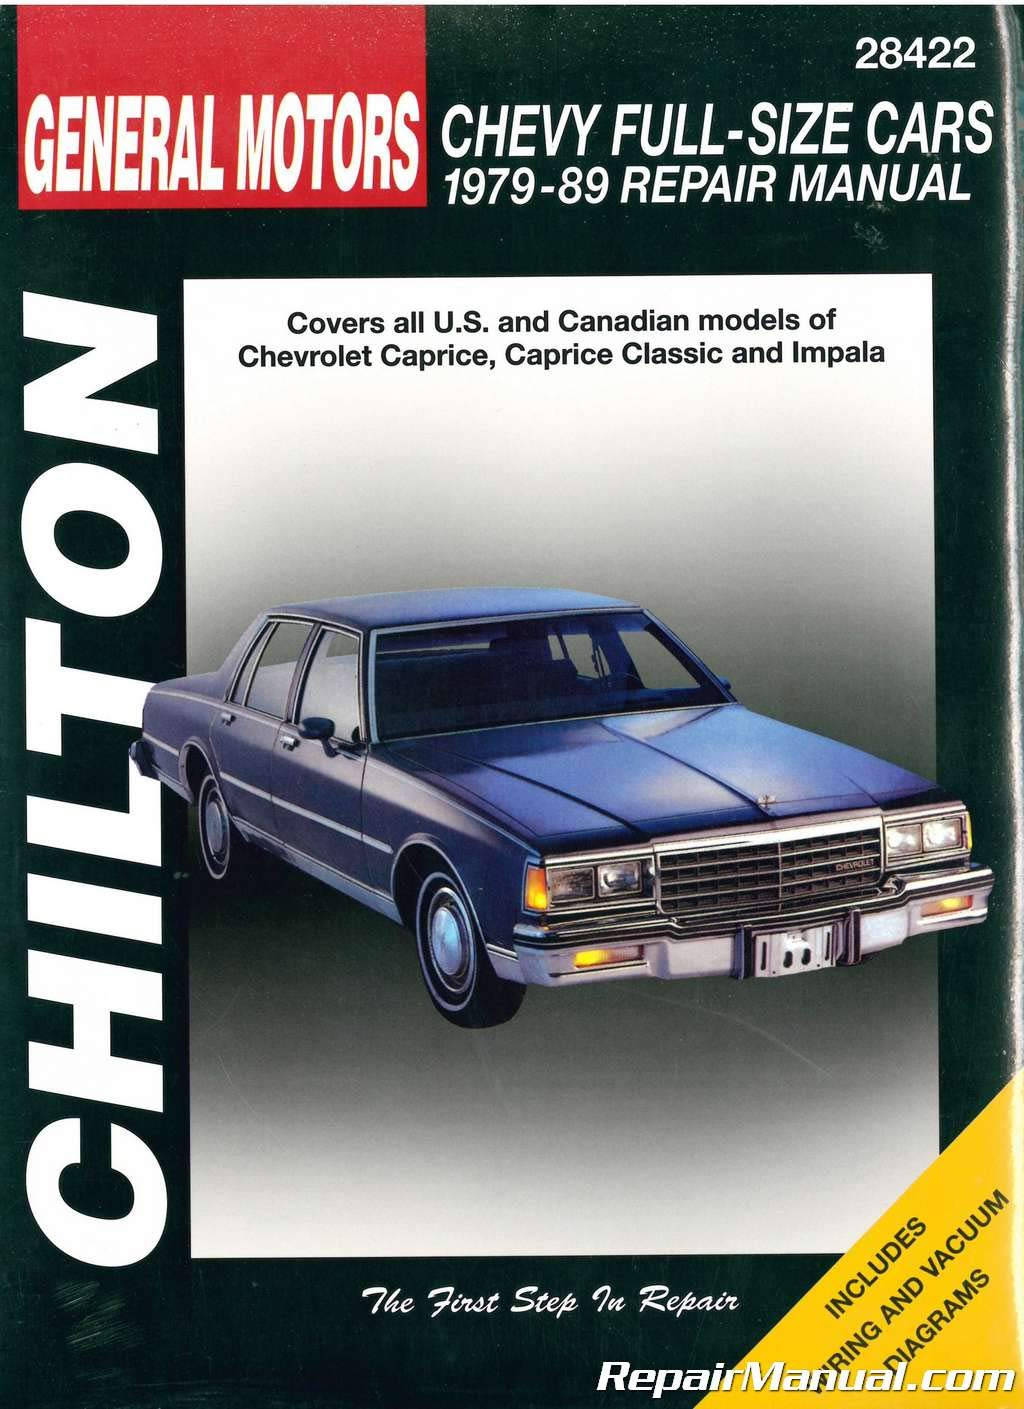 Download CH28422 Chilton Chevrolet Full-Size Cars 1979-1989 Repair Manual PDF